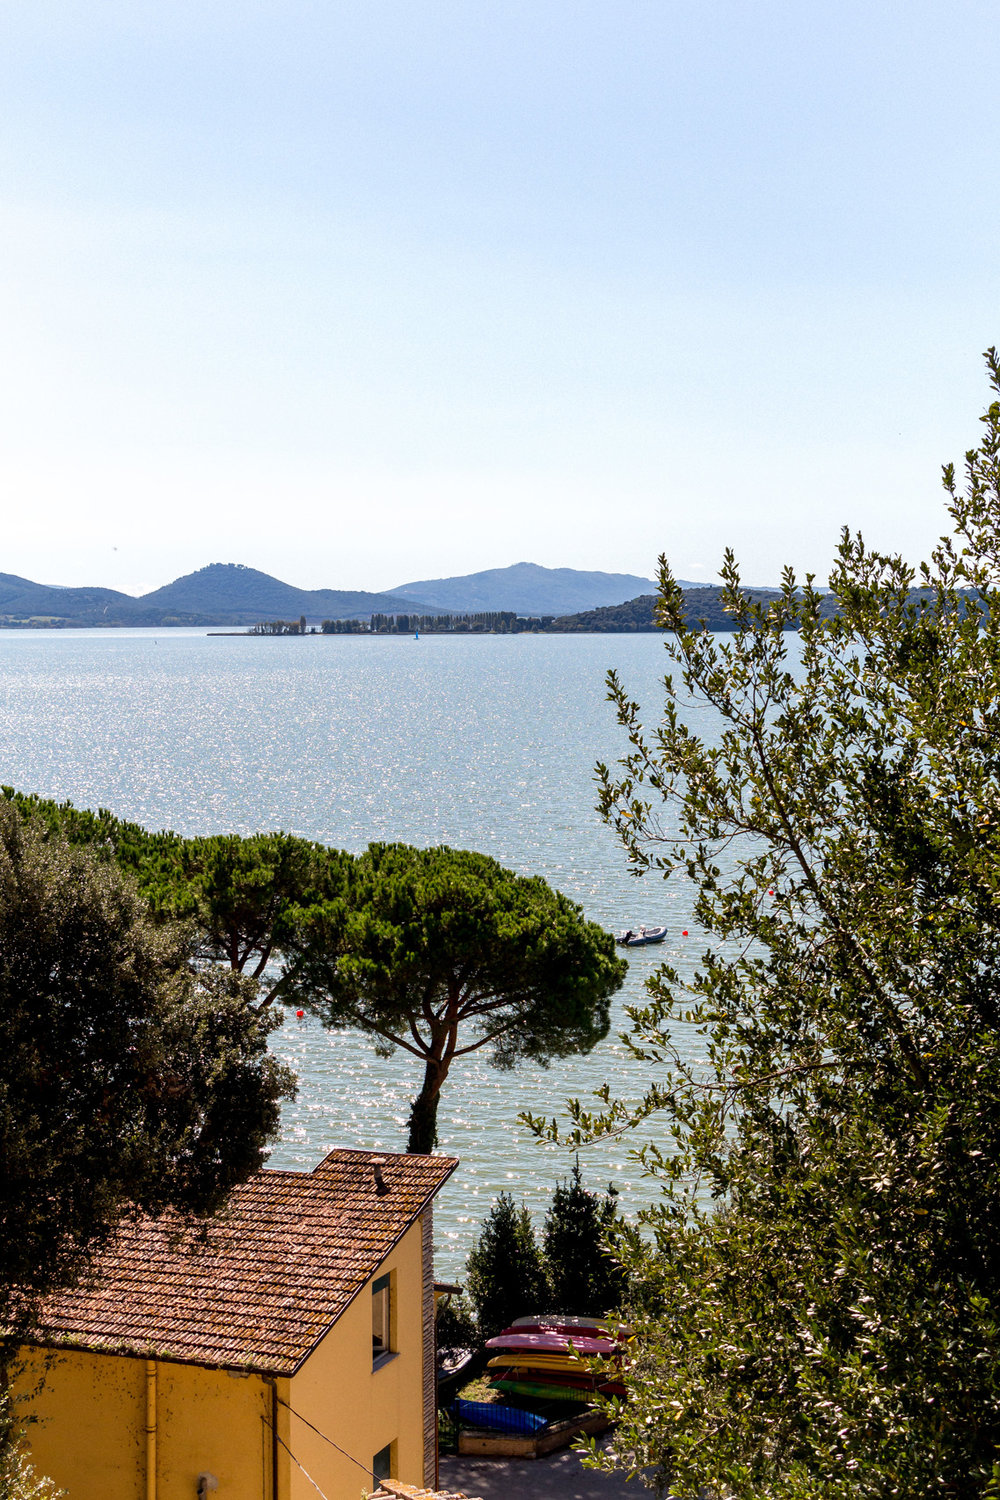 Trasimeno lake in Umbria, Italy